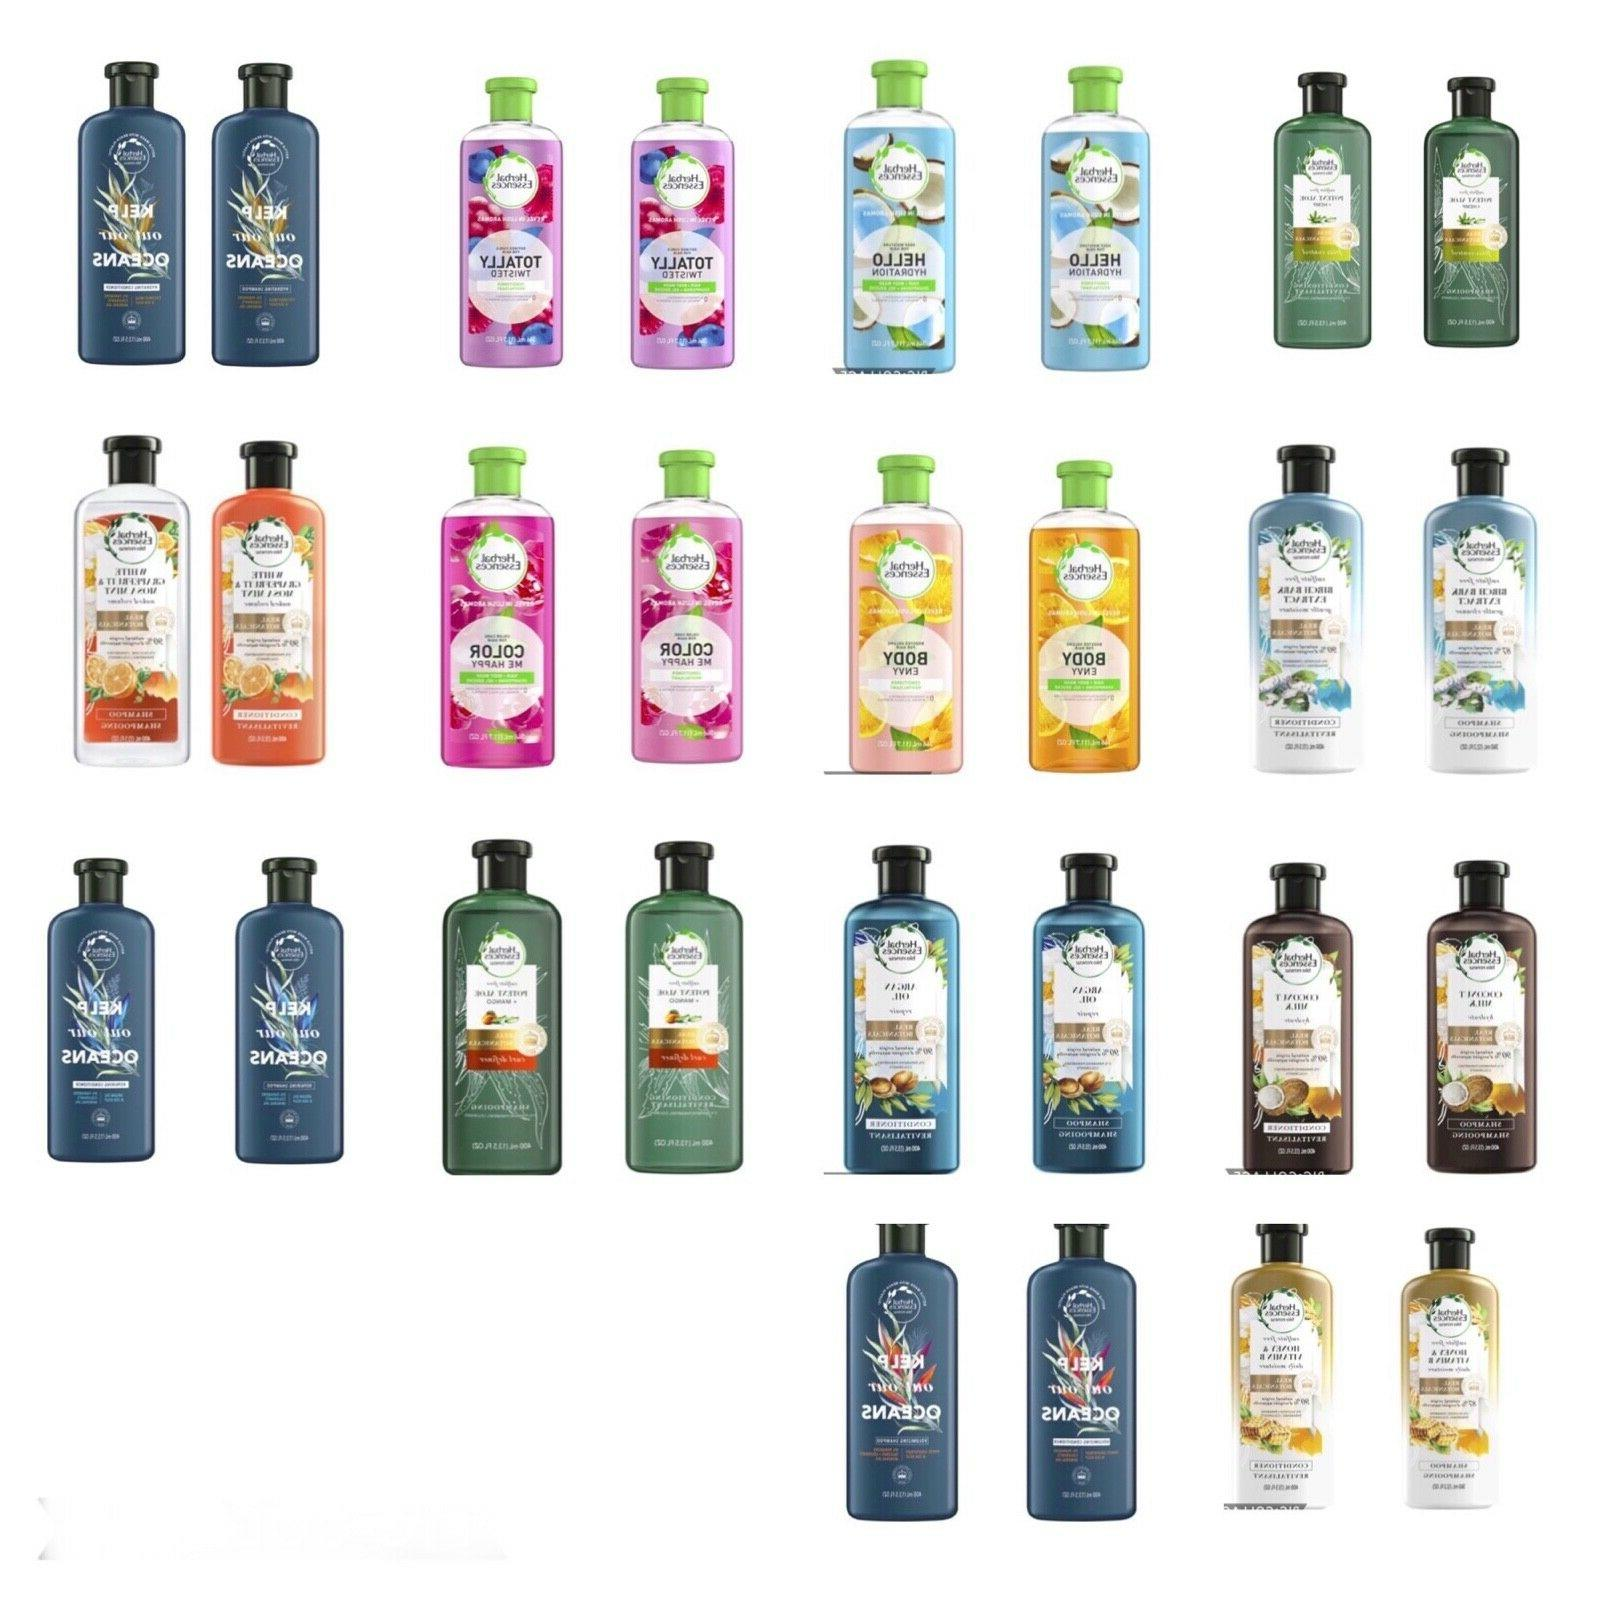 shampoo and conditioner sets full size choose